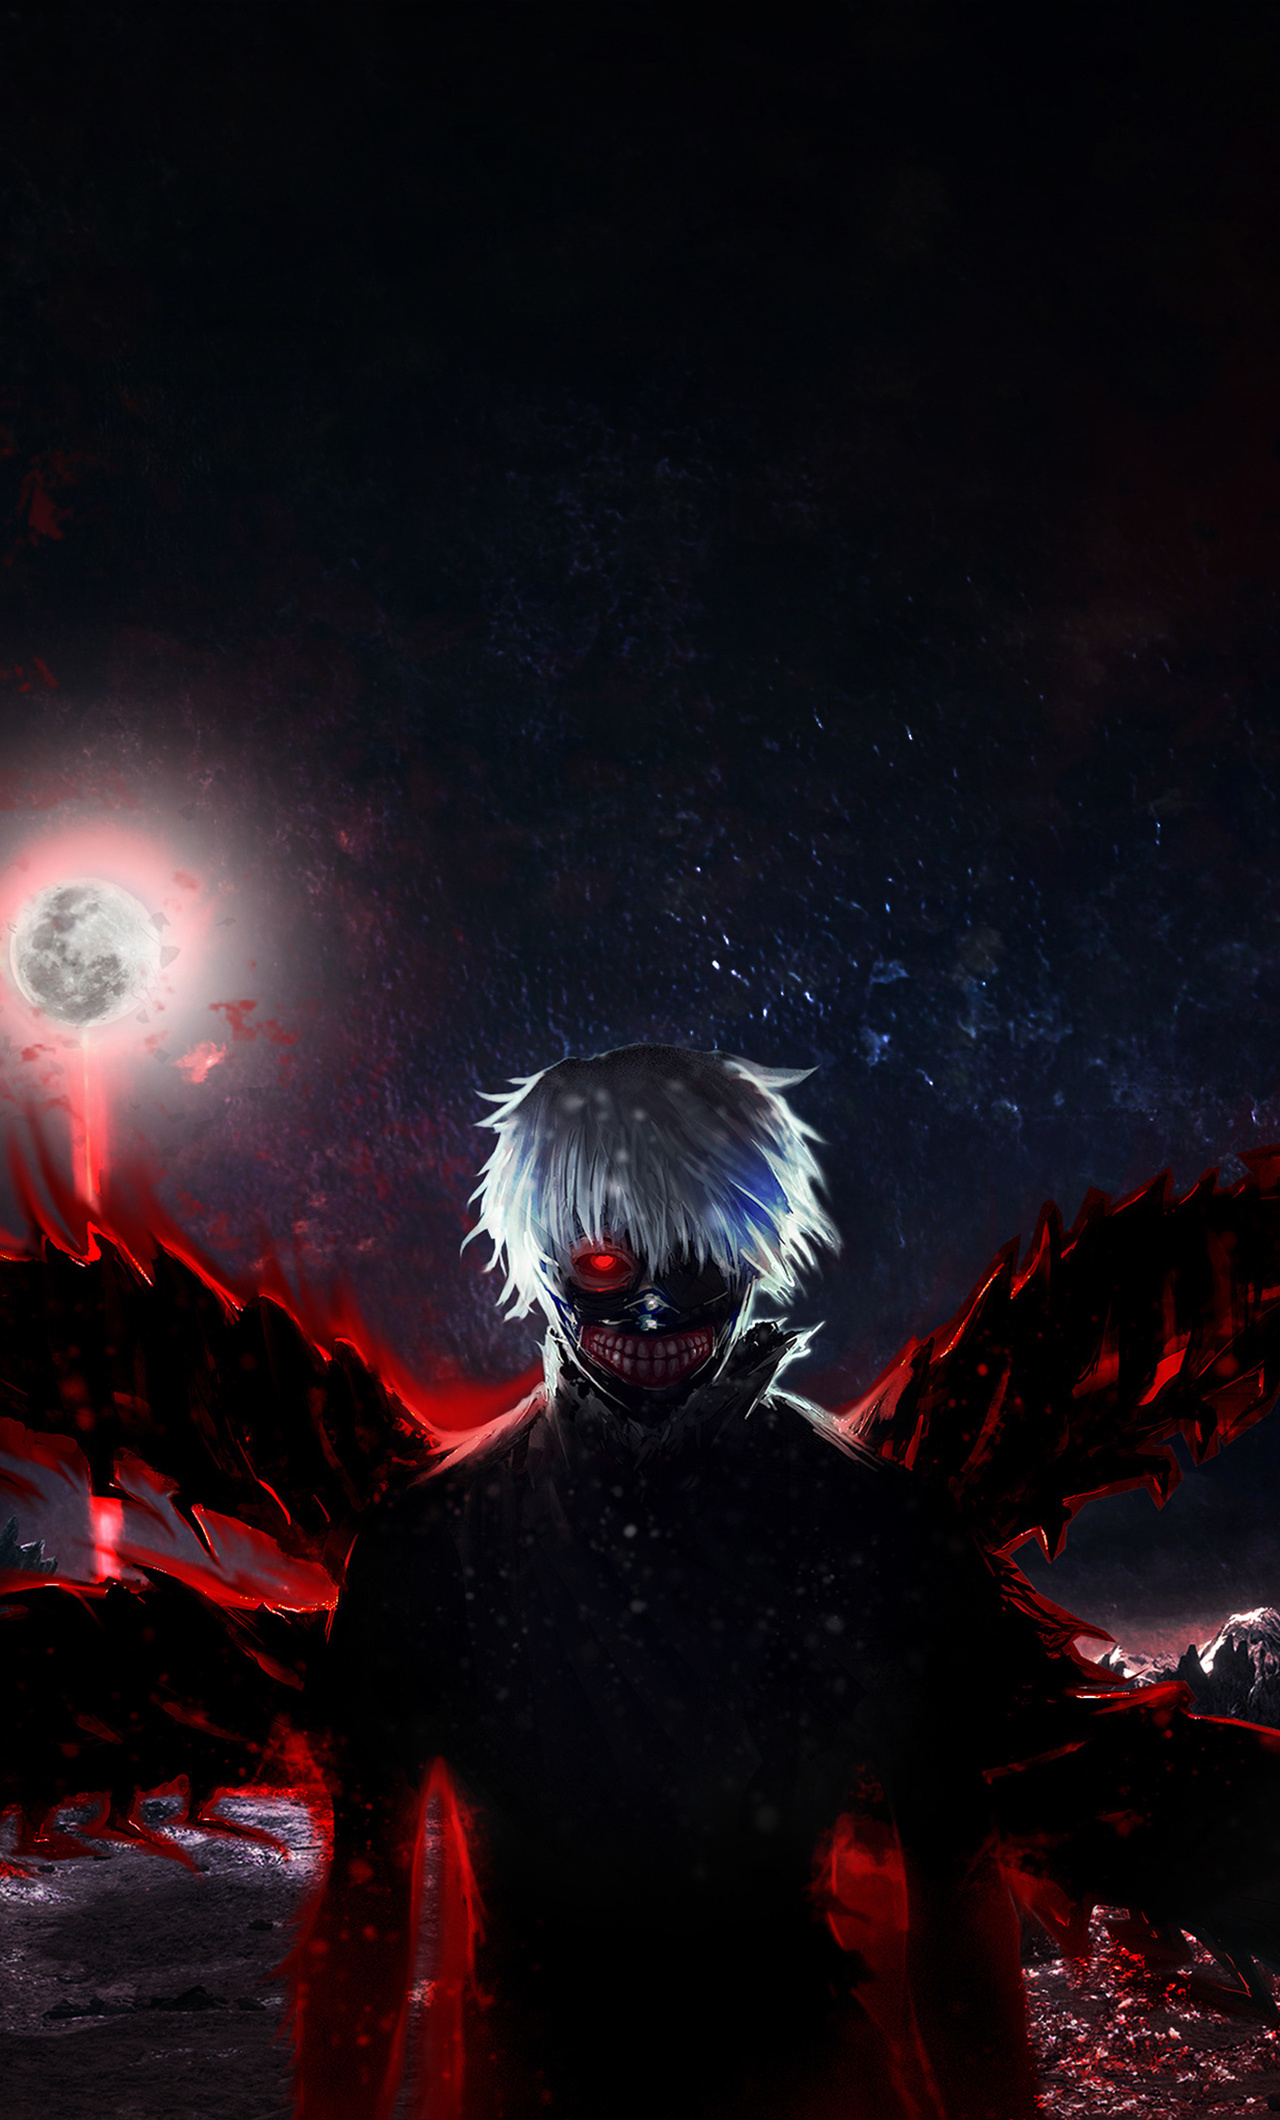 Download cool anime wallpapers iphone xr for desktop or mobile device. 1280x2120 Tokyo Ghoul 4k iPhone 6+ HD 4k Wallpapers ...